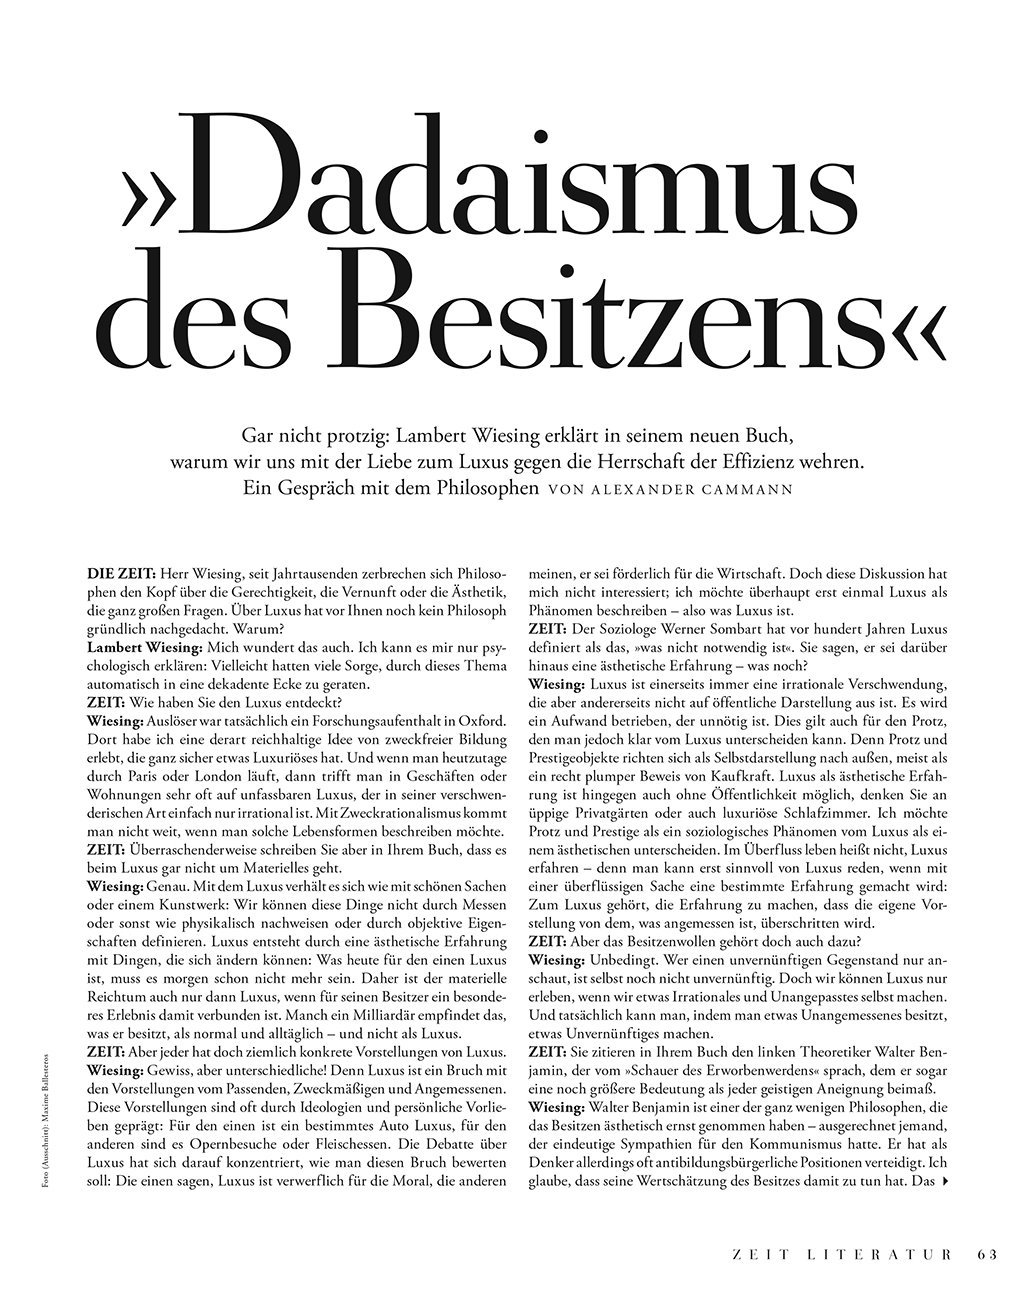 tabloid-literatur_2015_41_063.jpg